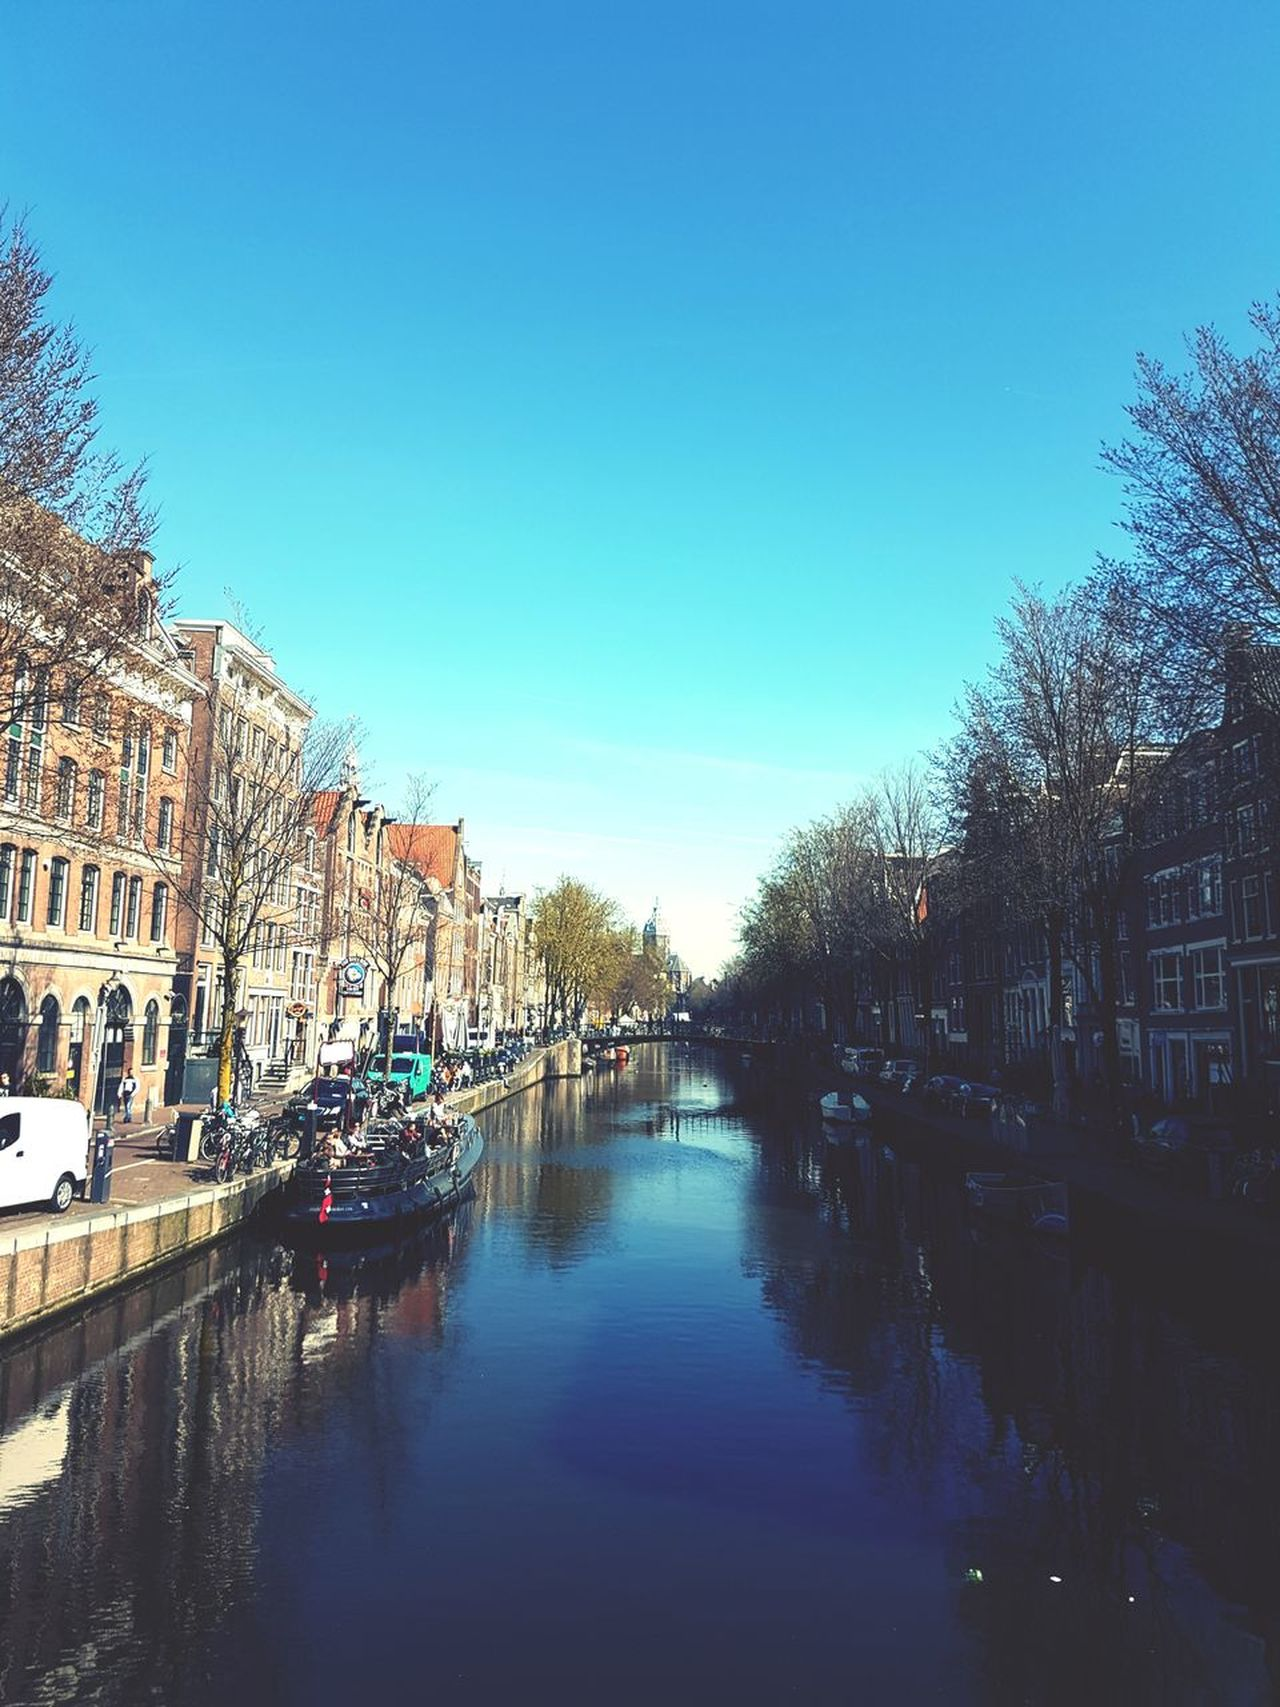 Amsterdam, 27th of March 2017 Reflection Water Architecture Sky No People Day Outdoors Tranquility Canal Bridge Buildings Amsterdam Jordaan